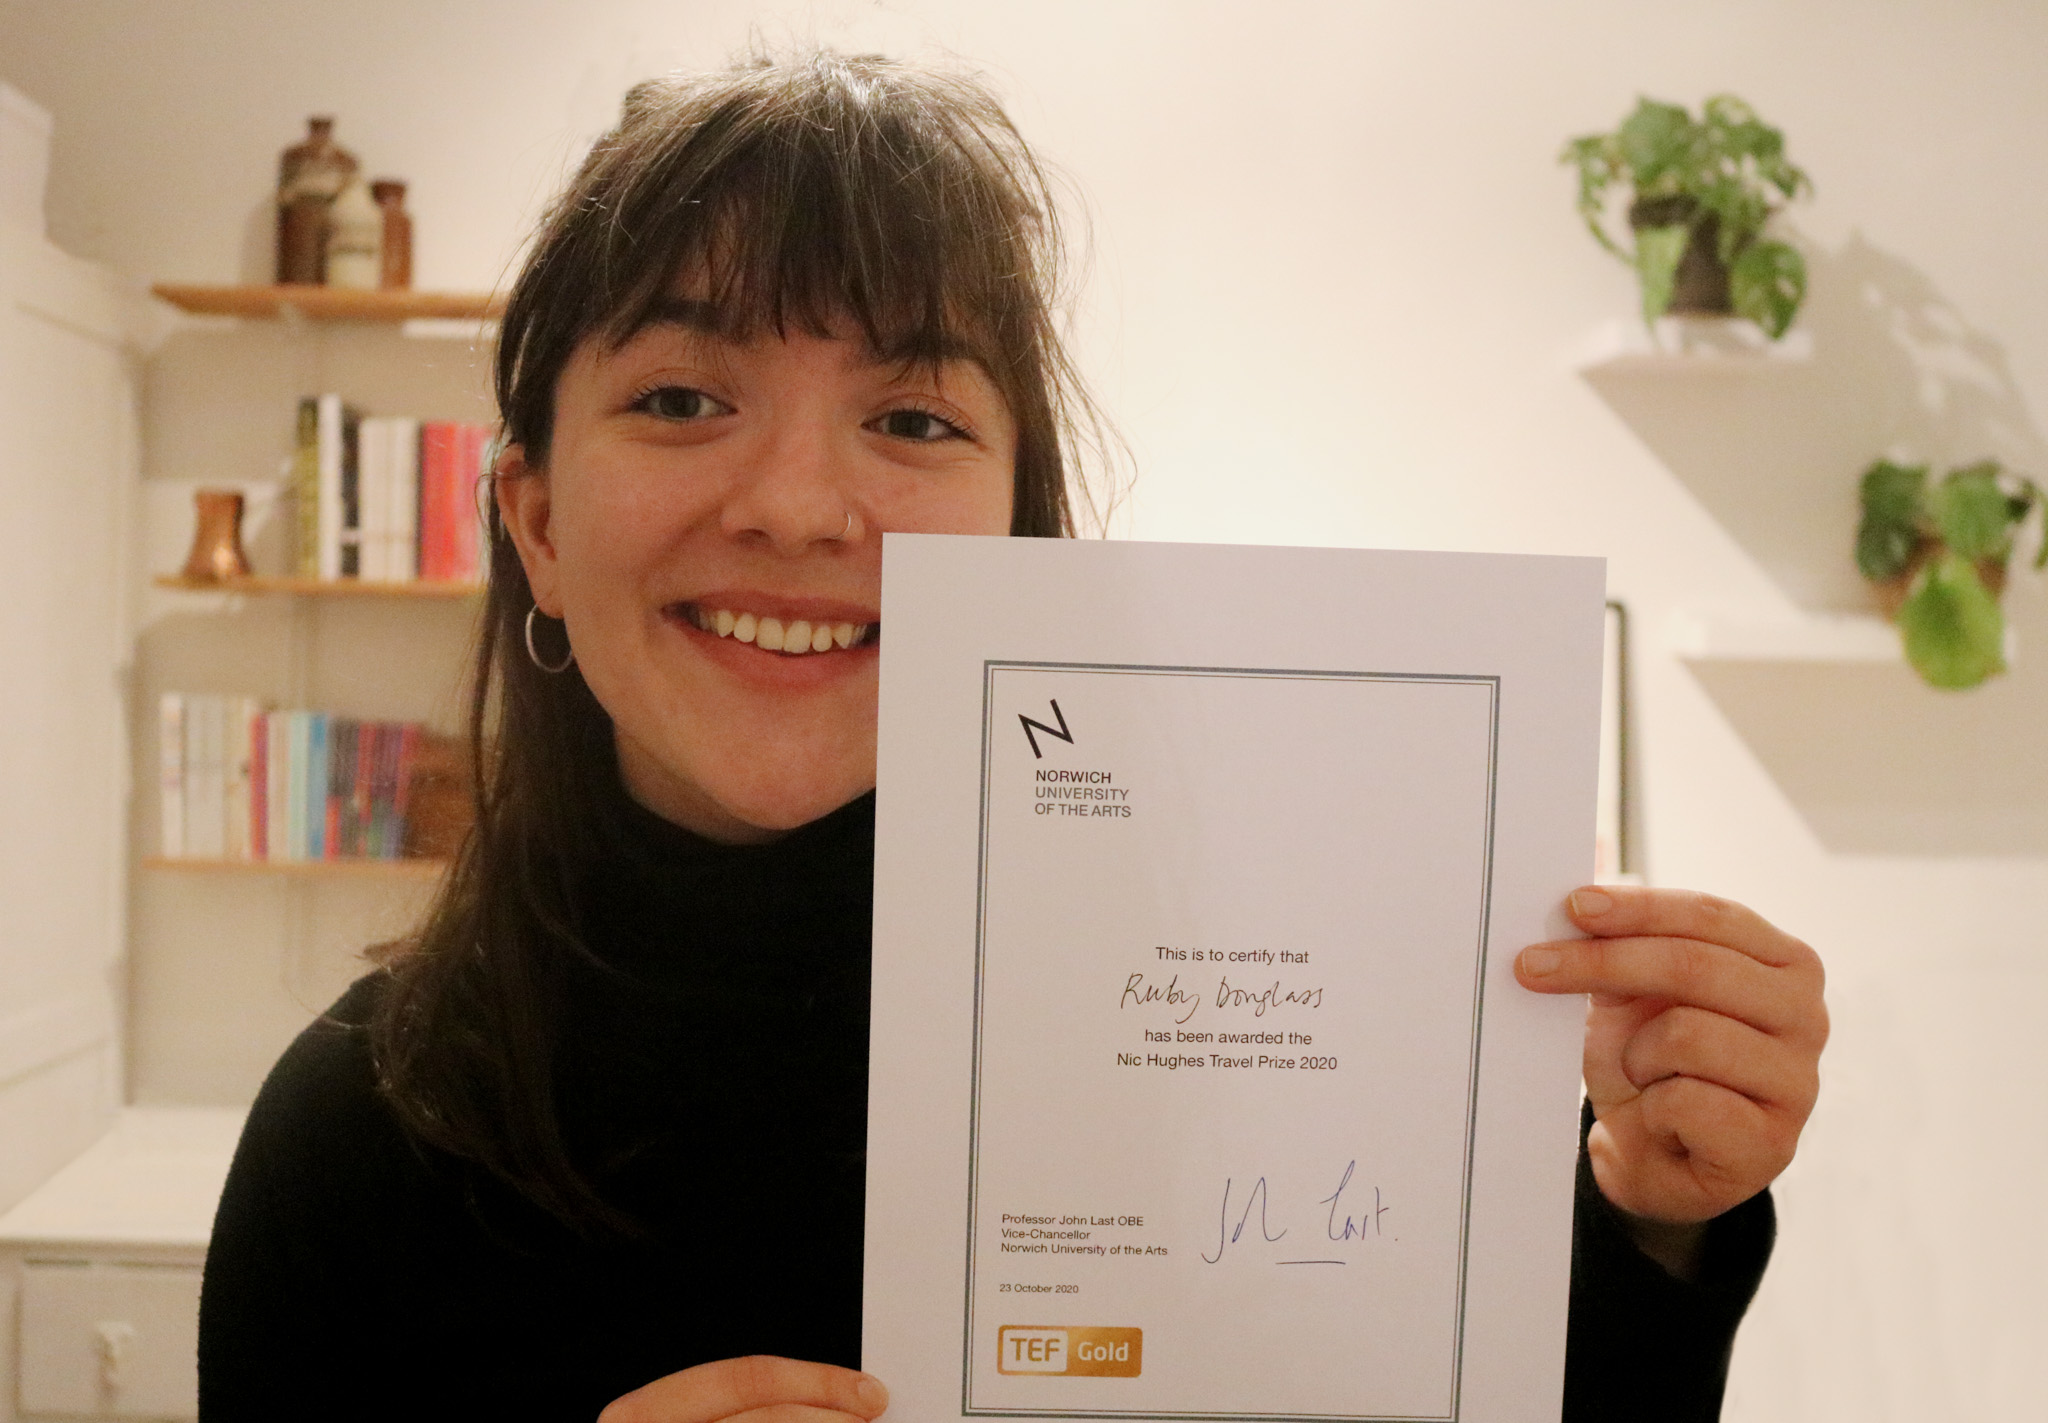 Ruby Douglass wins the annual Nic Hughes Travel Prize 2020